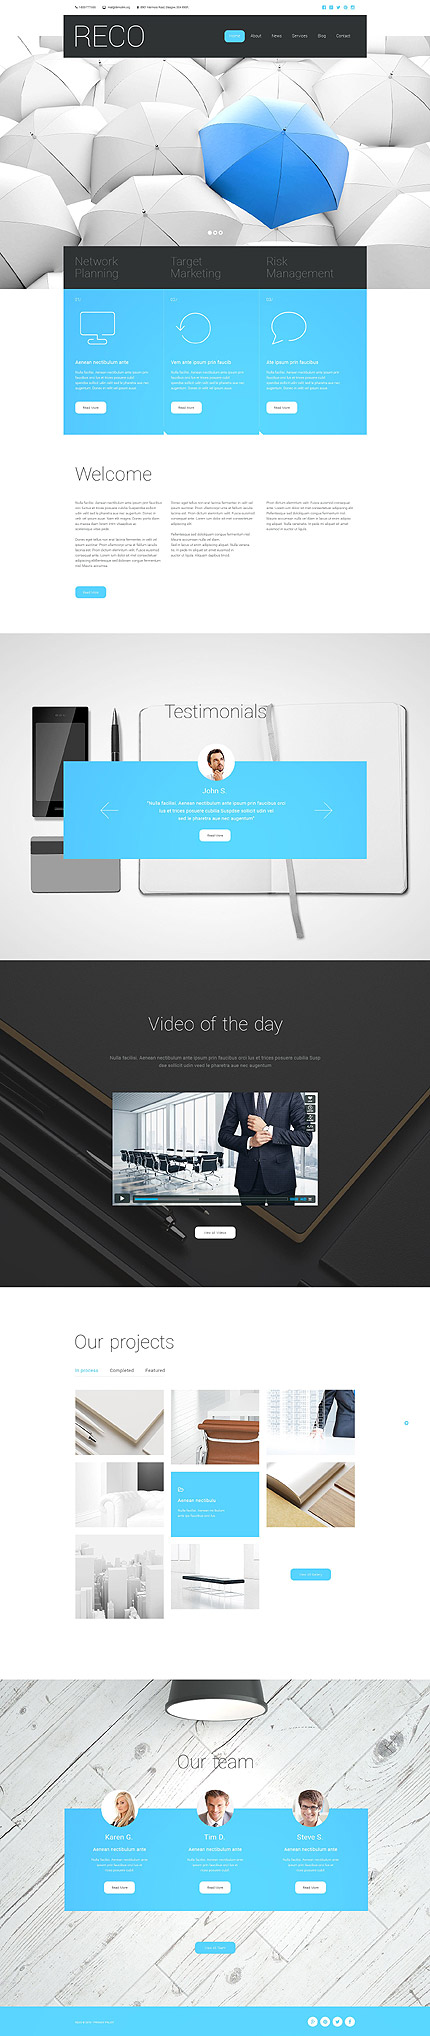 Template 55292 - Blue Business Responsive Website Template with Slider, Parallax, Video